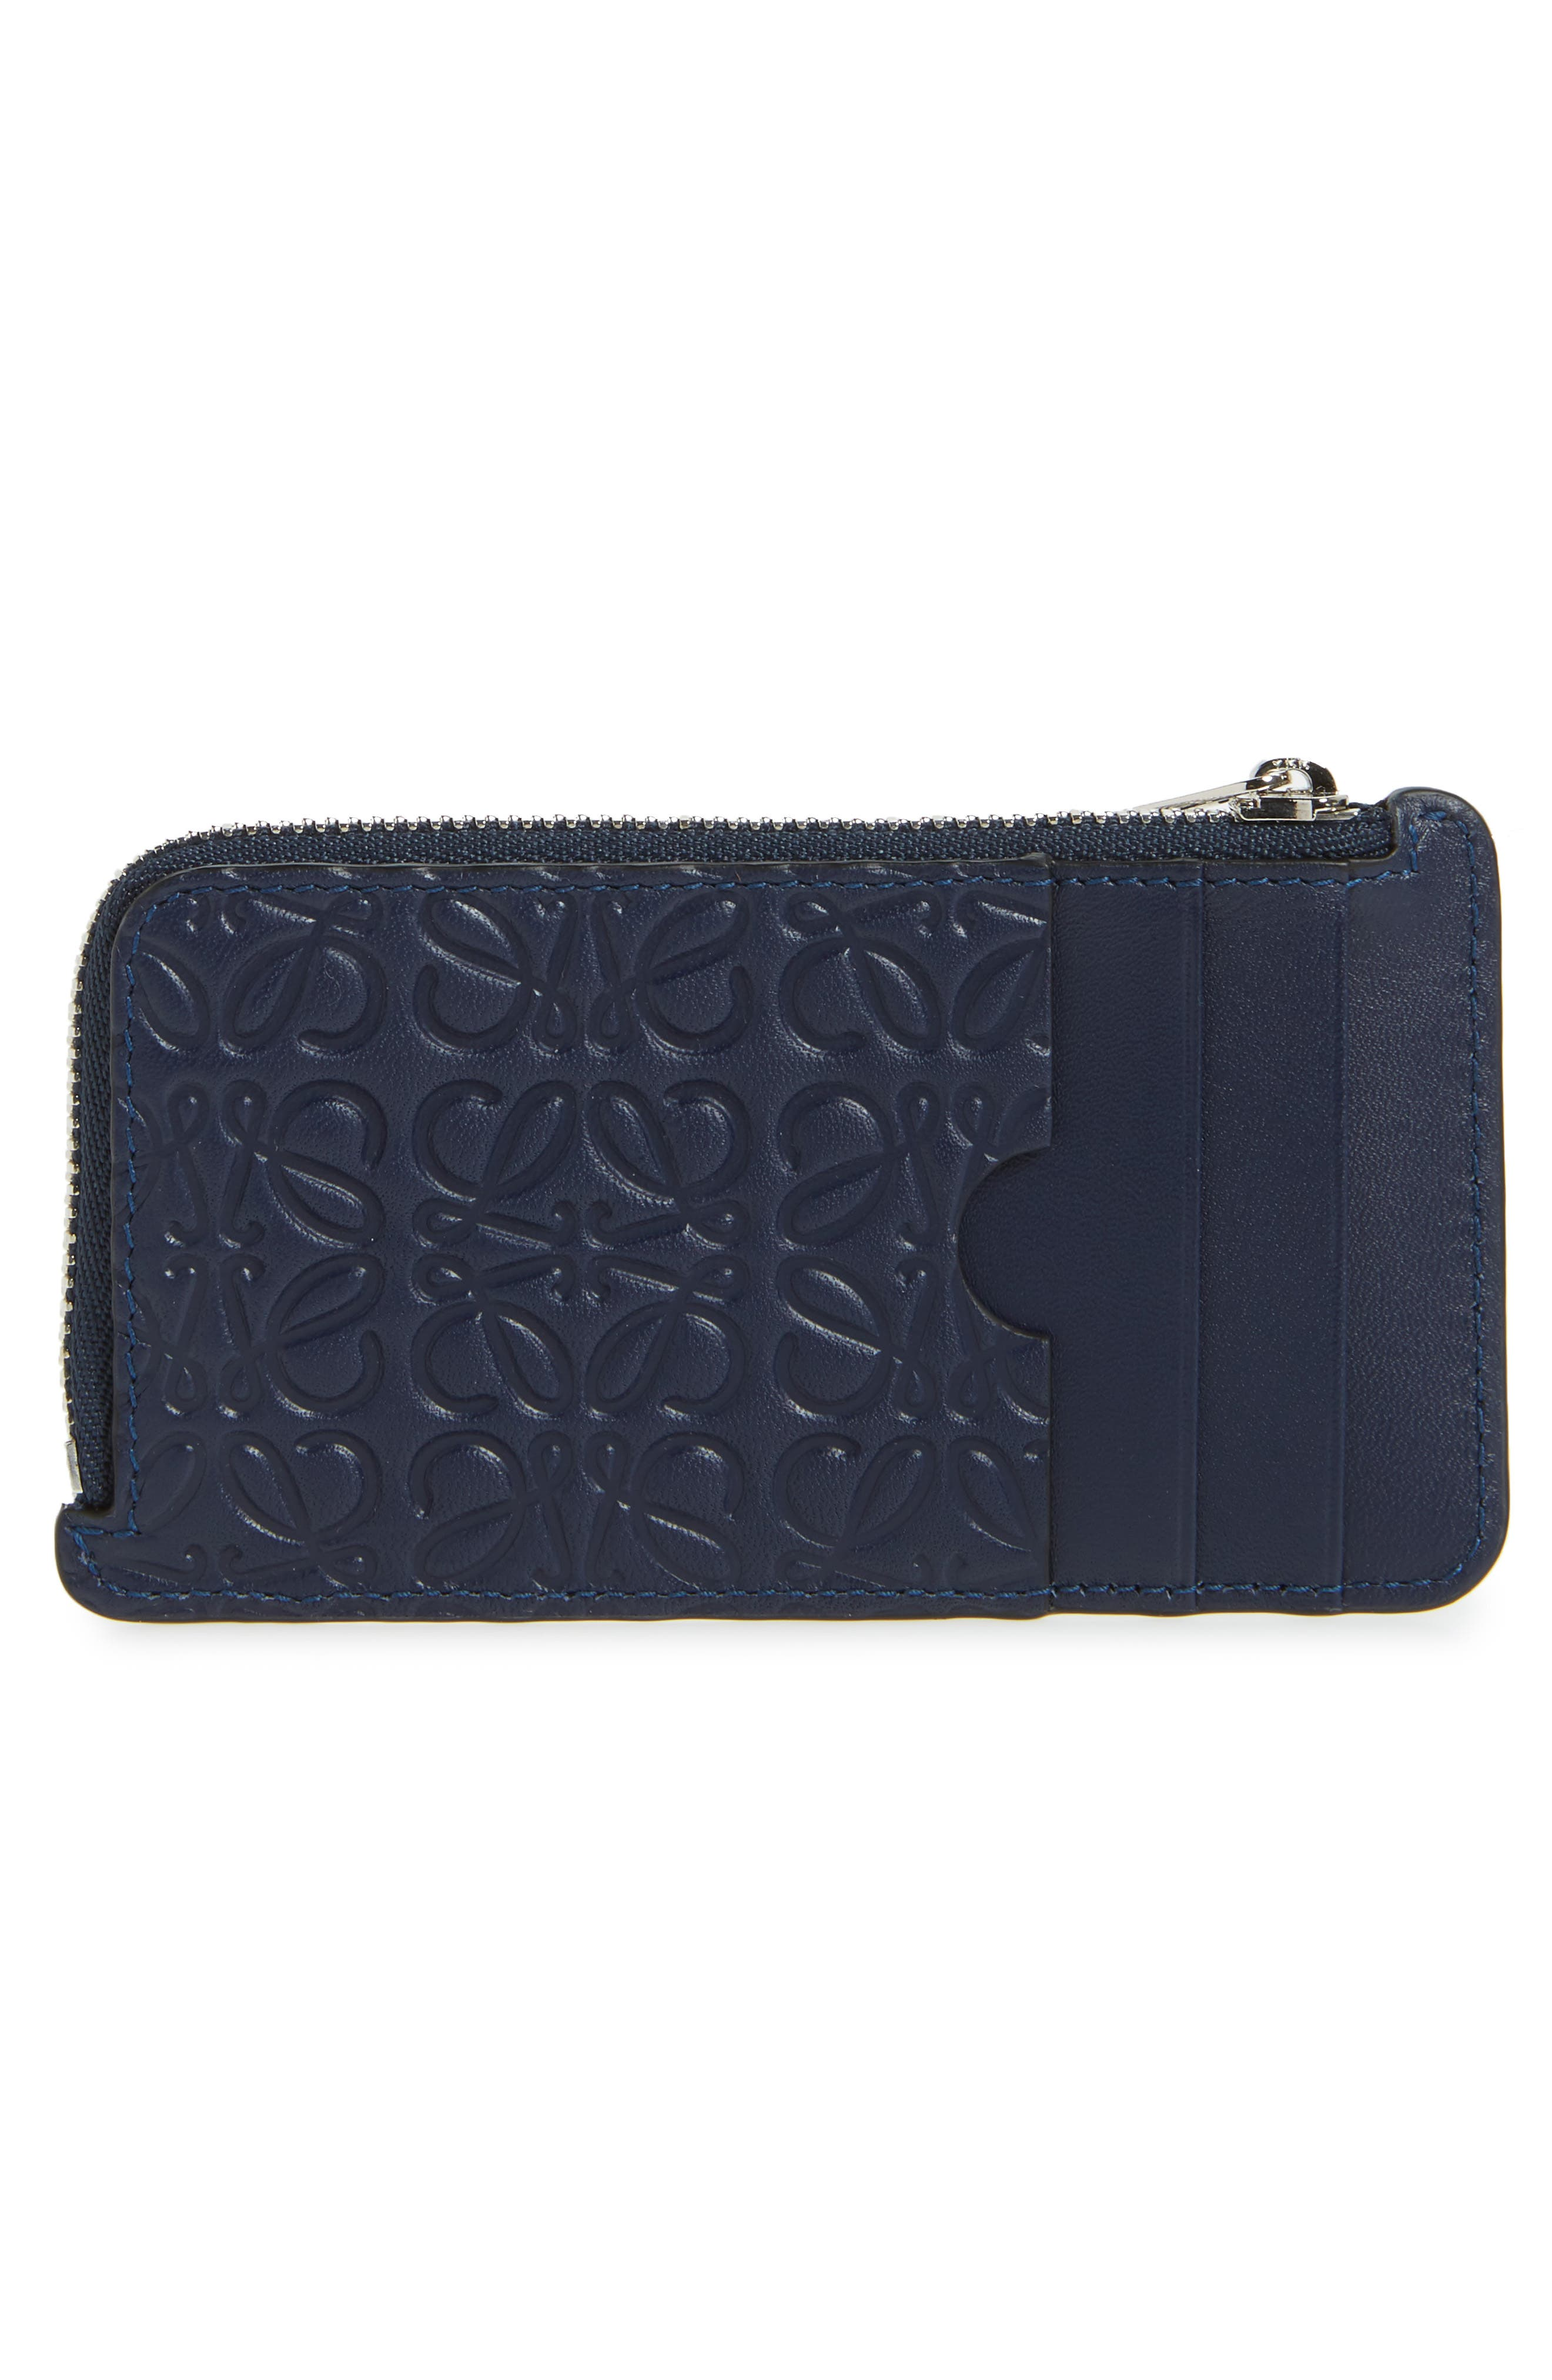 Coin & Card Zip Pouch,                             Alternate thumbnail 3, color,                             NAVY BLUE